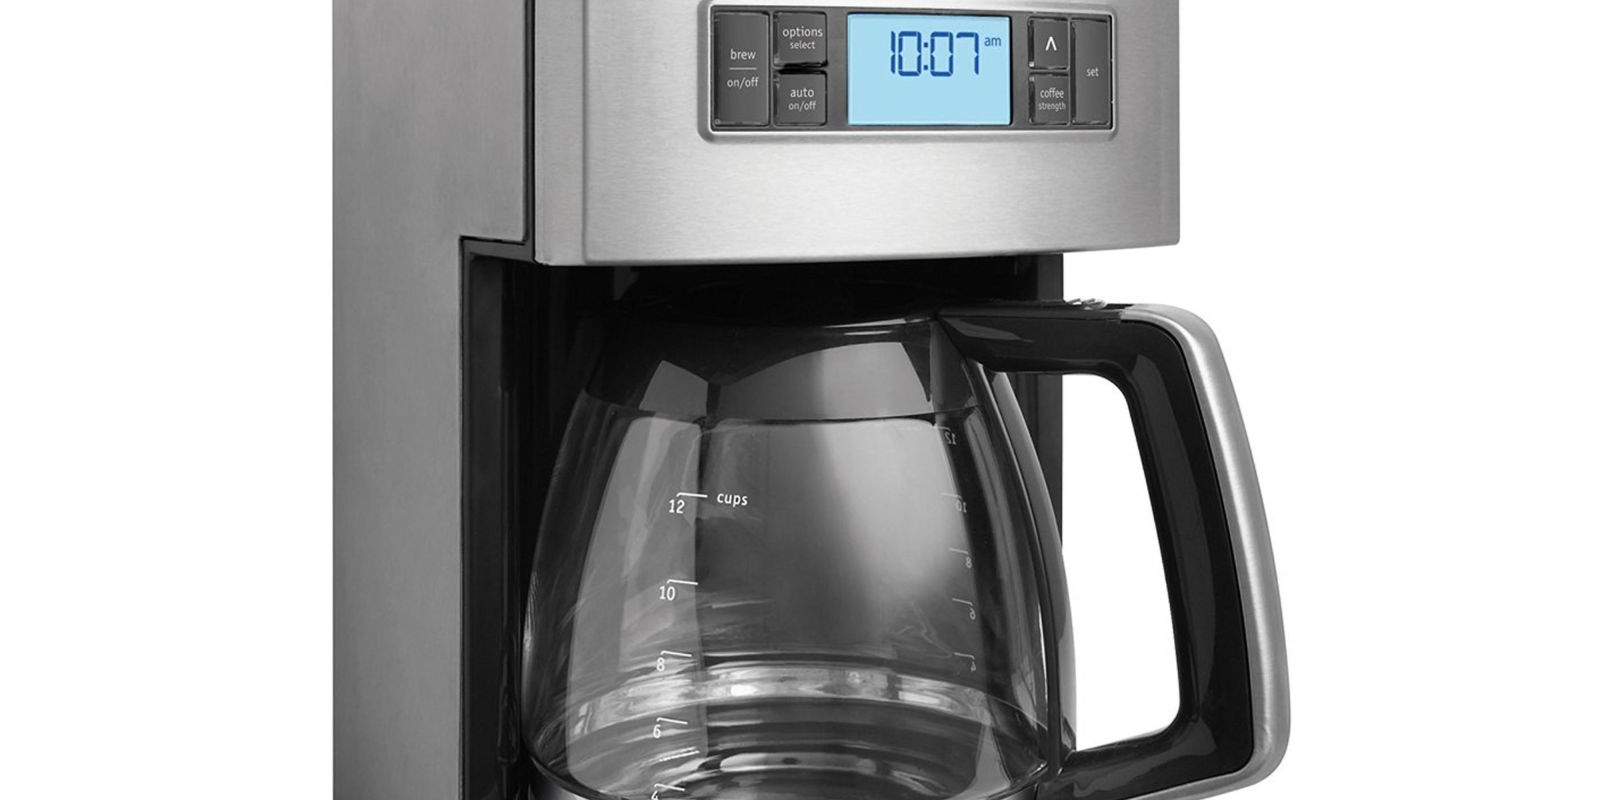 Frigidaire Professional Coffeemaker Review, Price and Features